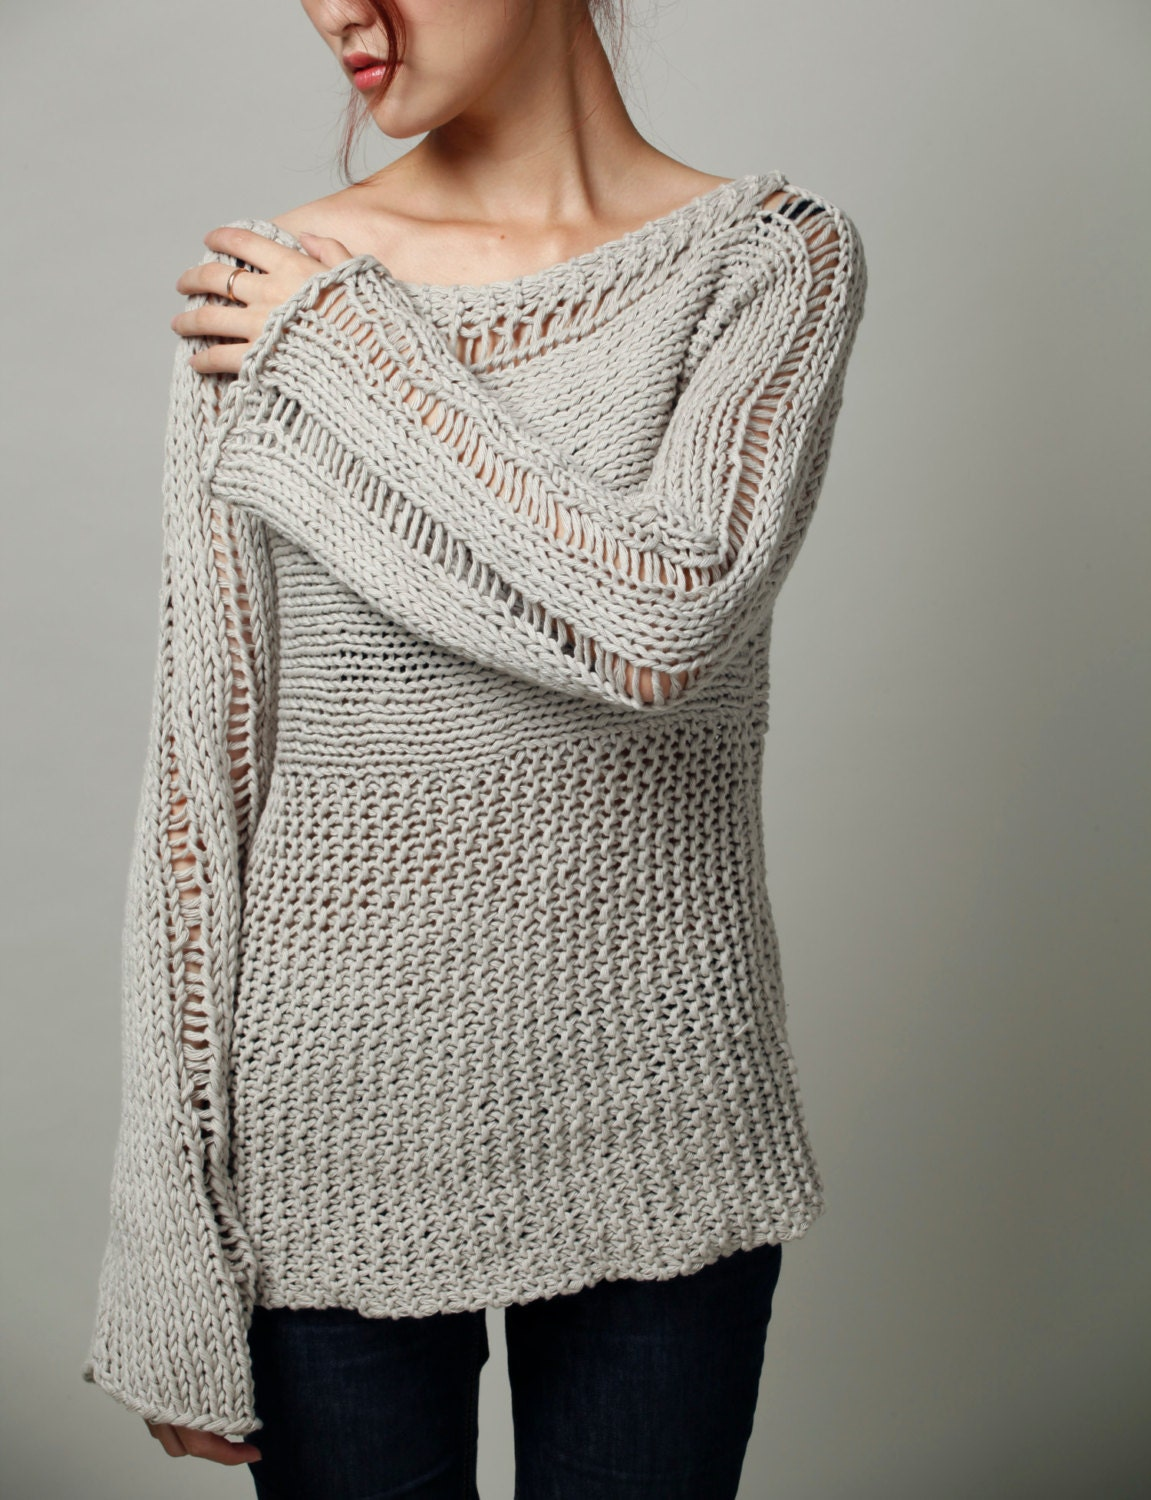 Knitting Sweaters For Women : Hand knit woman sweater eco cotton oversized in